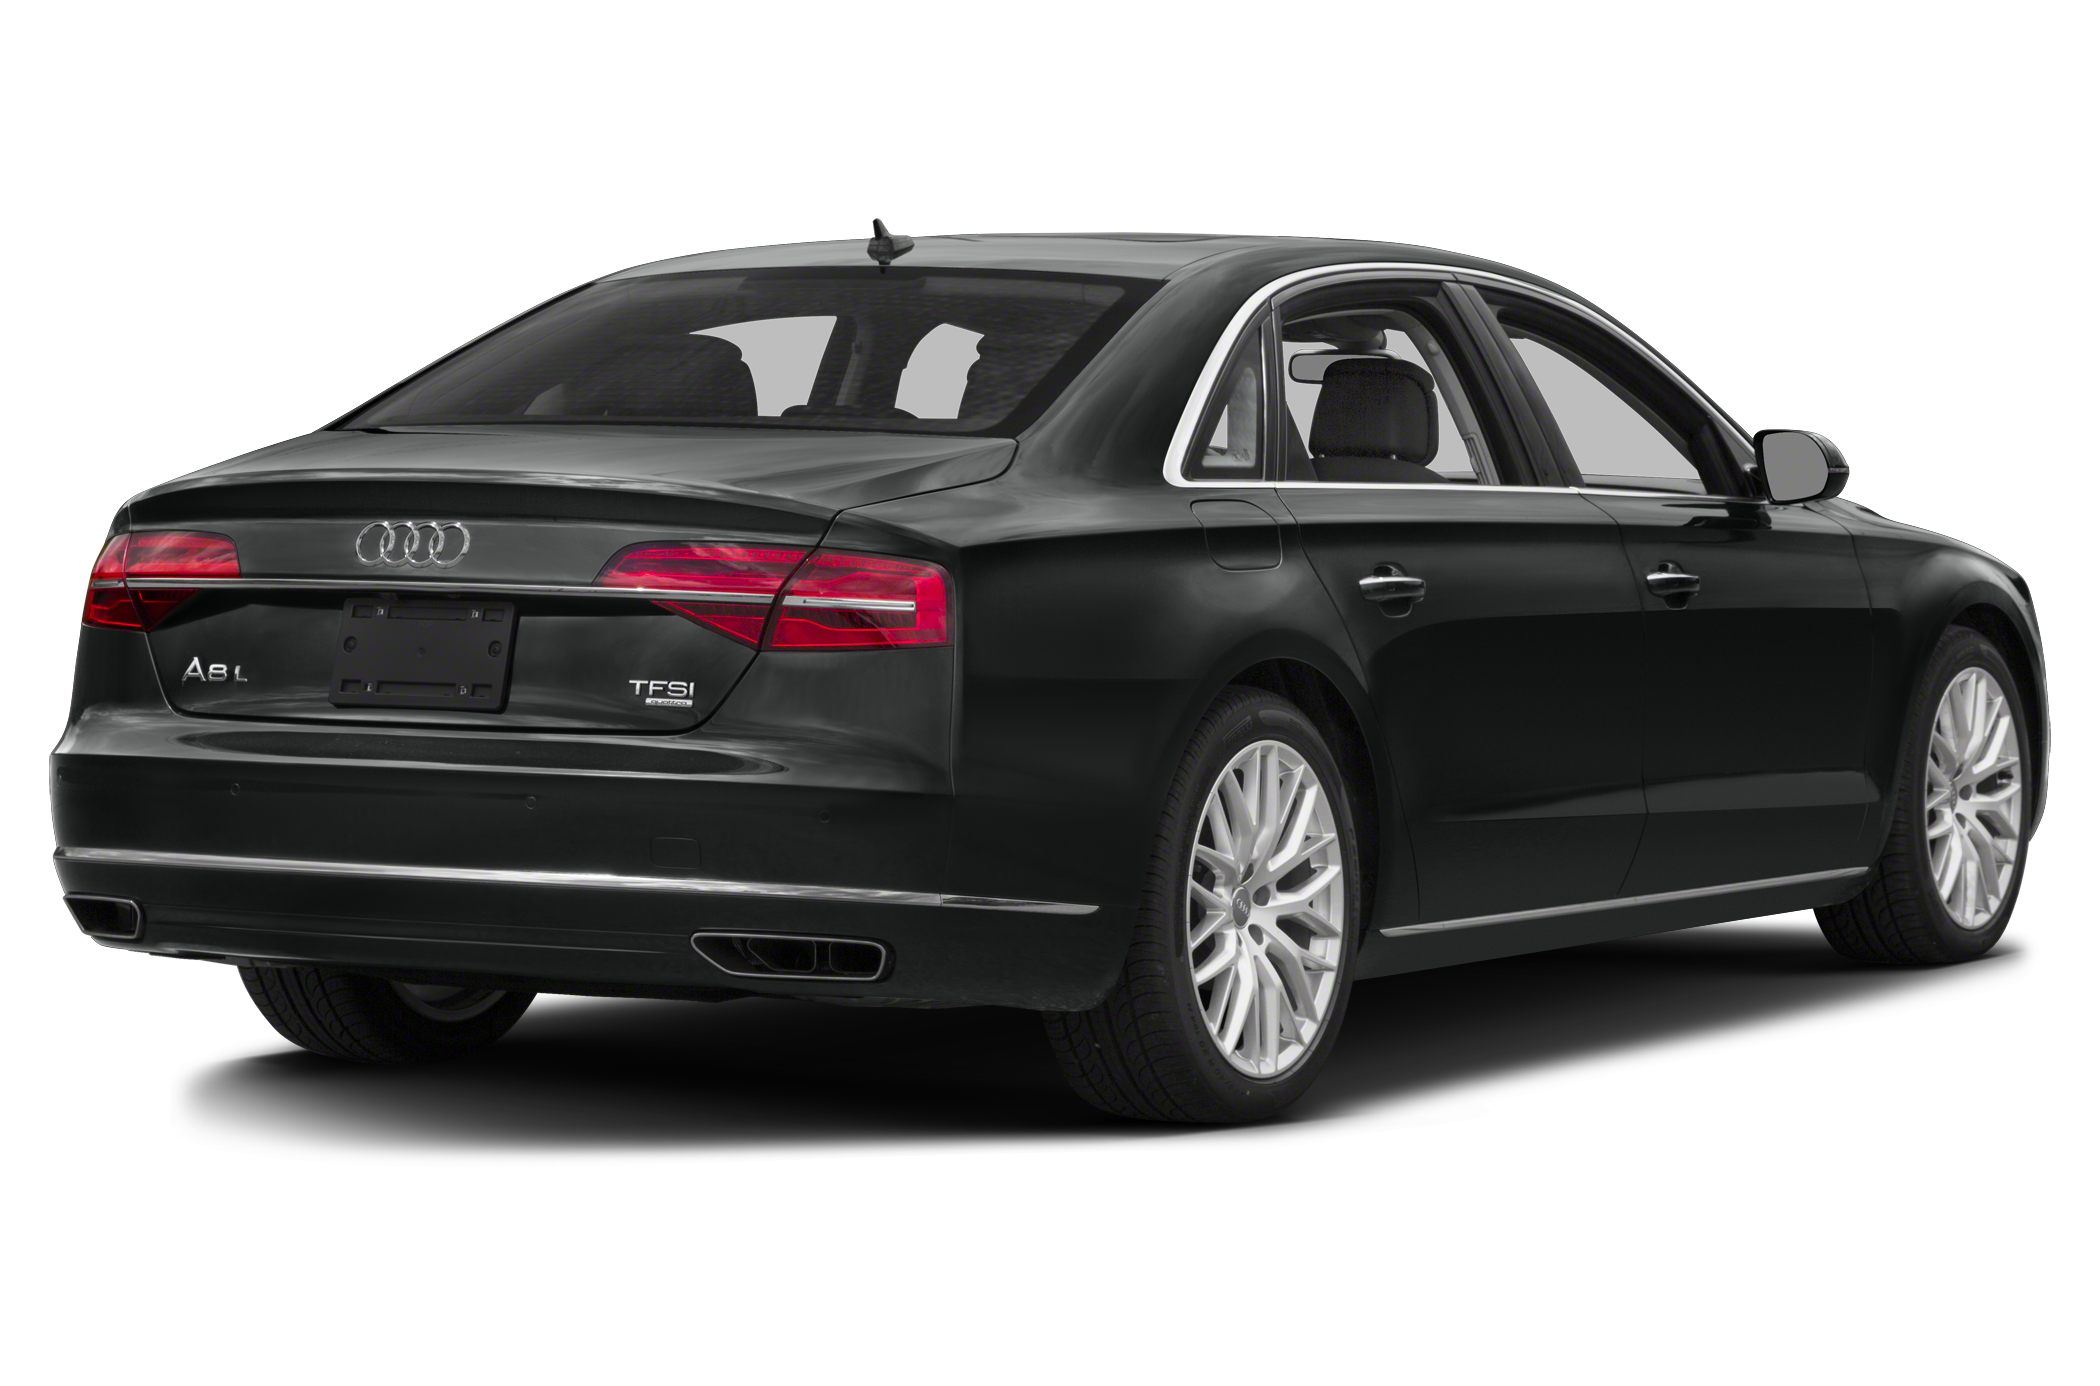 2017 Audi A8 Reviews, Specs and Prices | Cars.com